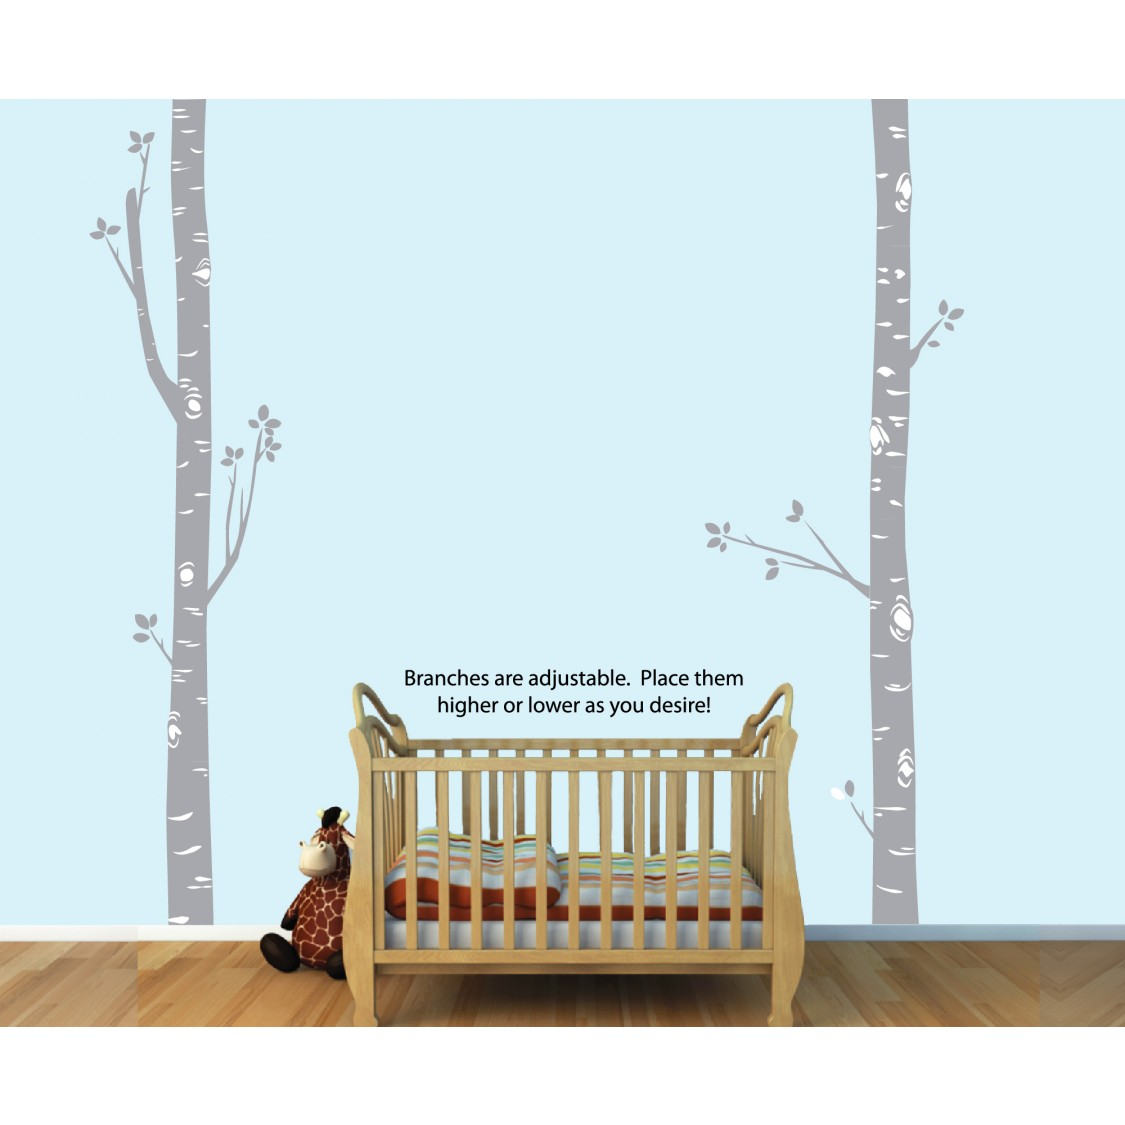 Birch Tree Wall Stickers and Tree Wall Decor For Girls